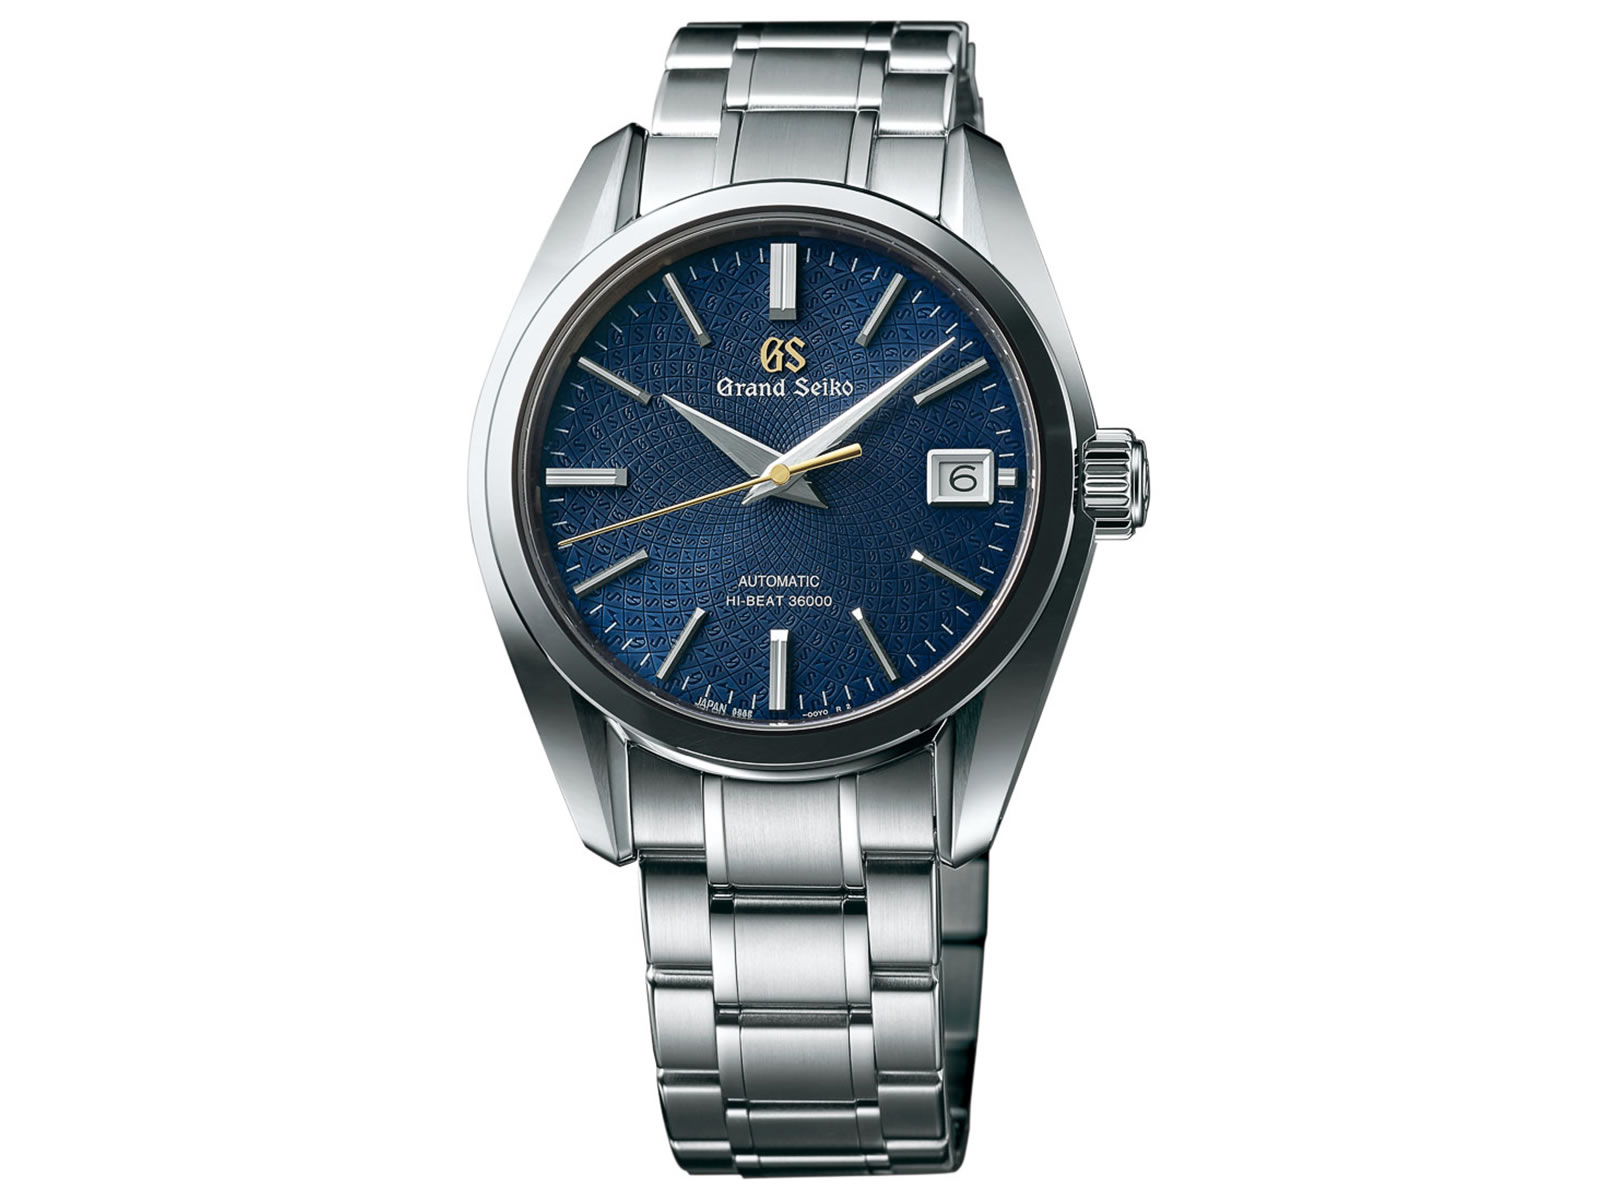 sbgh267-grand-seiko-hi-beat-36000-3-.jpg